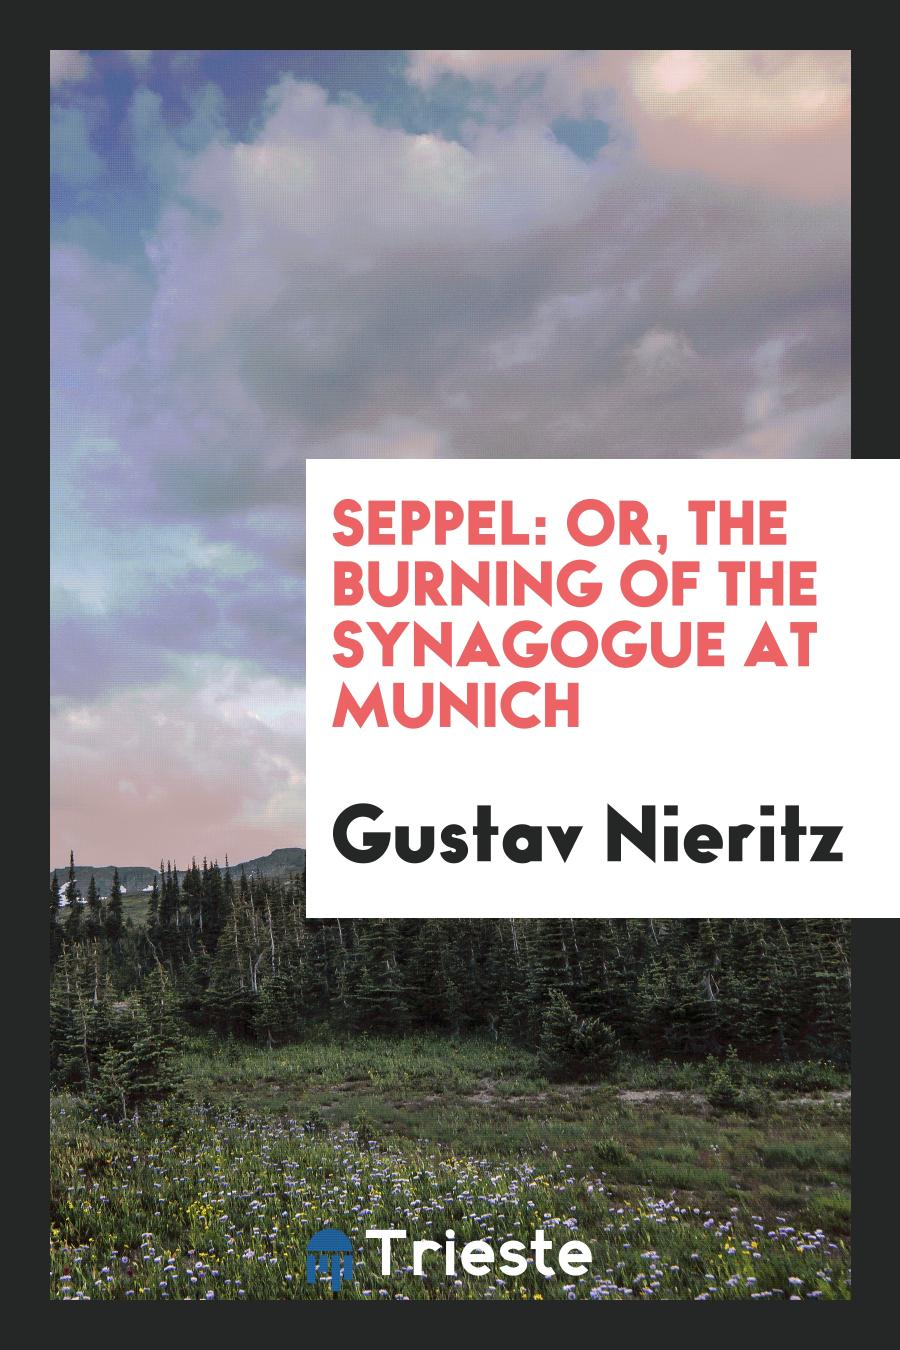 Seppel: Or, The Burning of the Synagogue at Munich